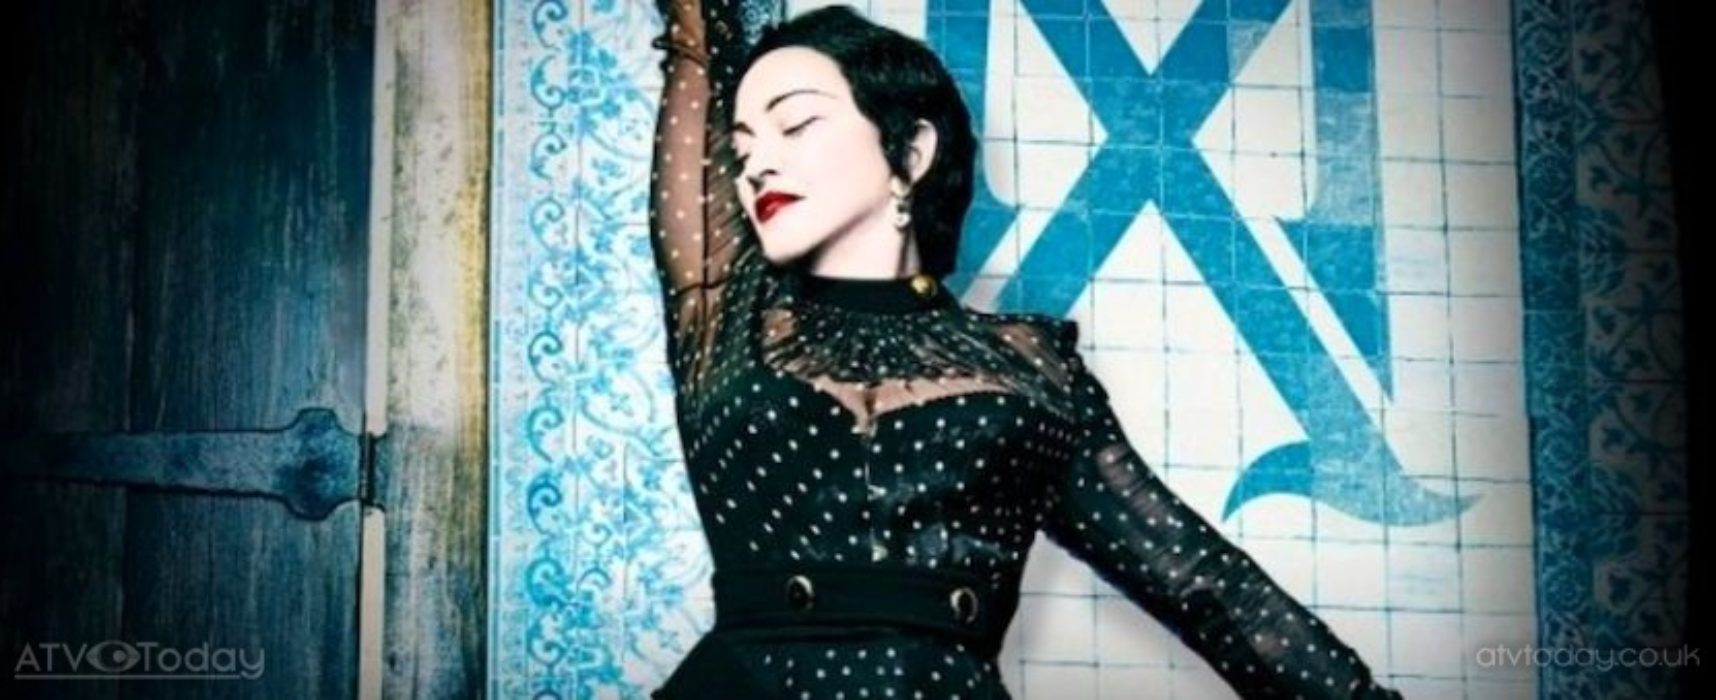 London date change for Madonna's Madame X Tour